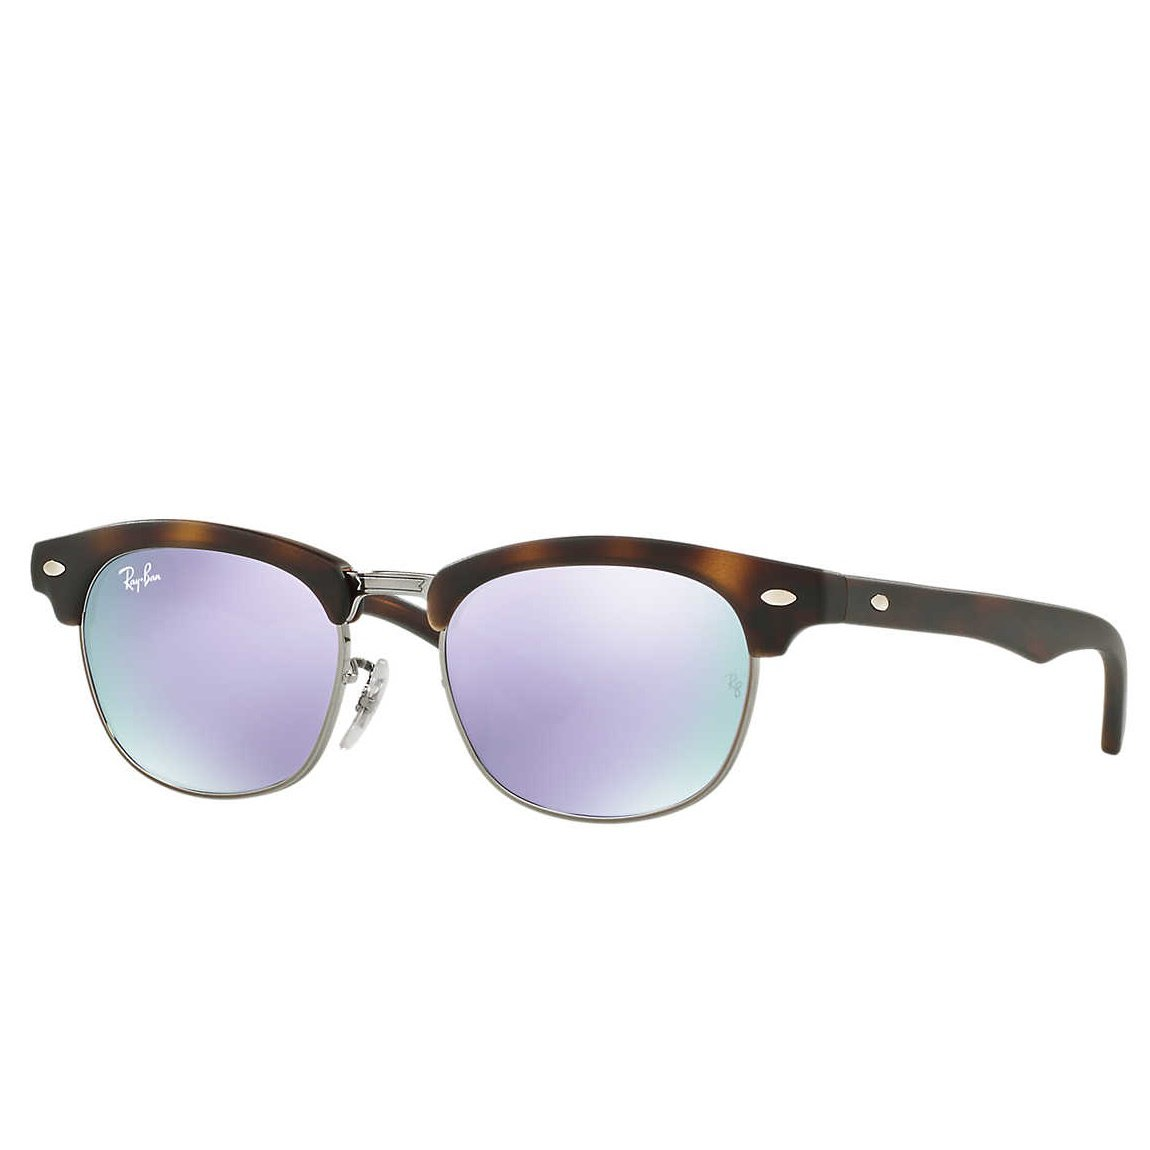 Ray-Ban Jr Clubmaster Sunglasses - Matte Tort/ Mirror Lilac